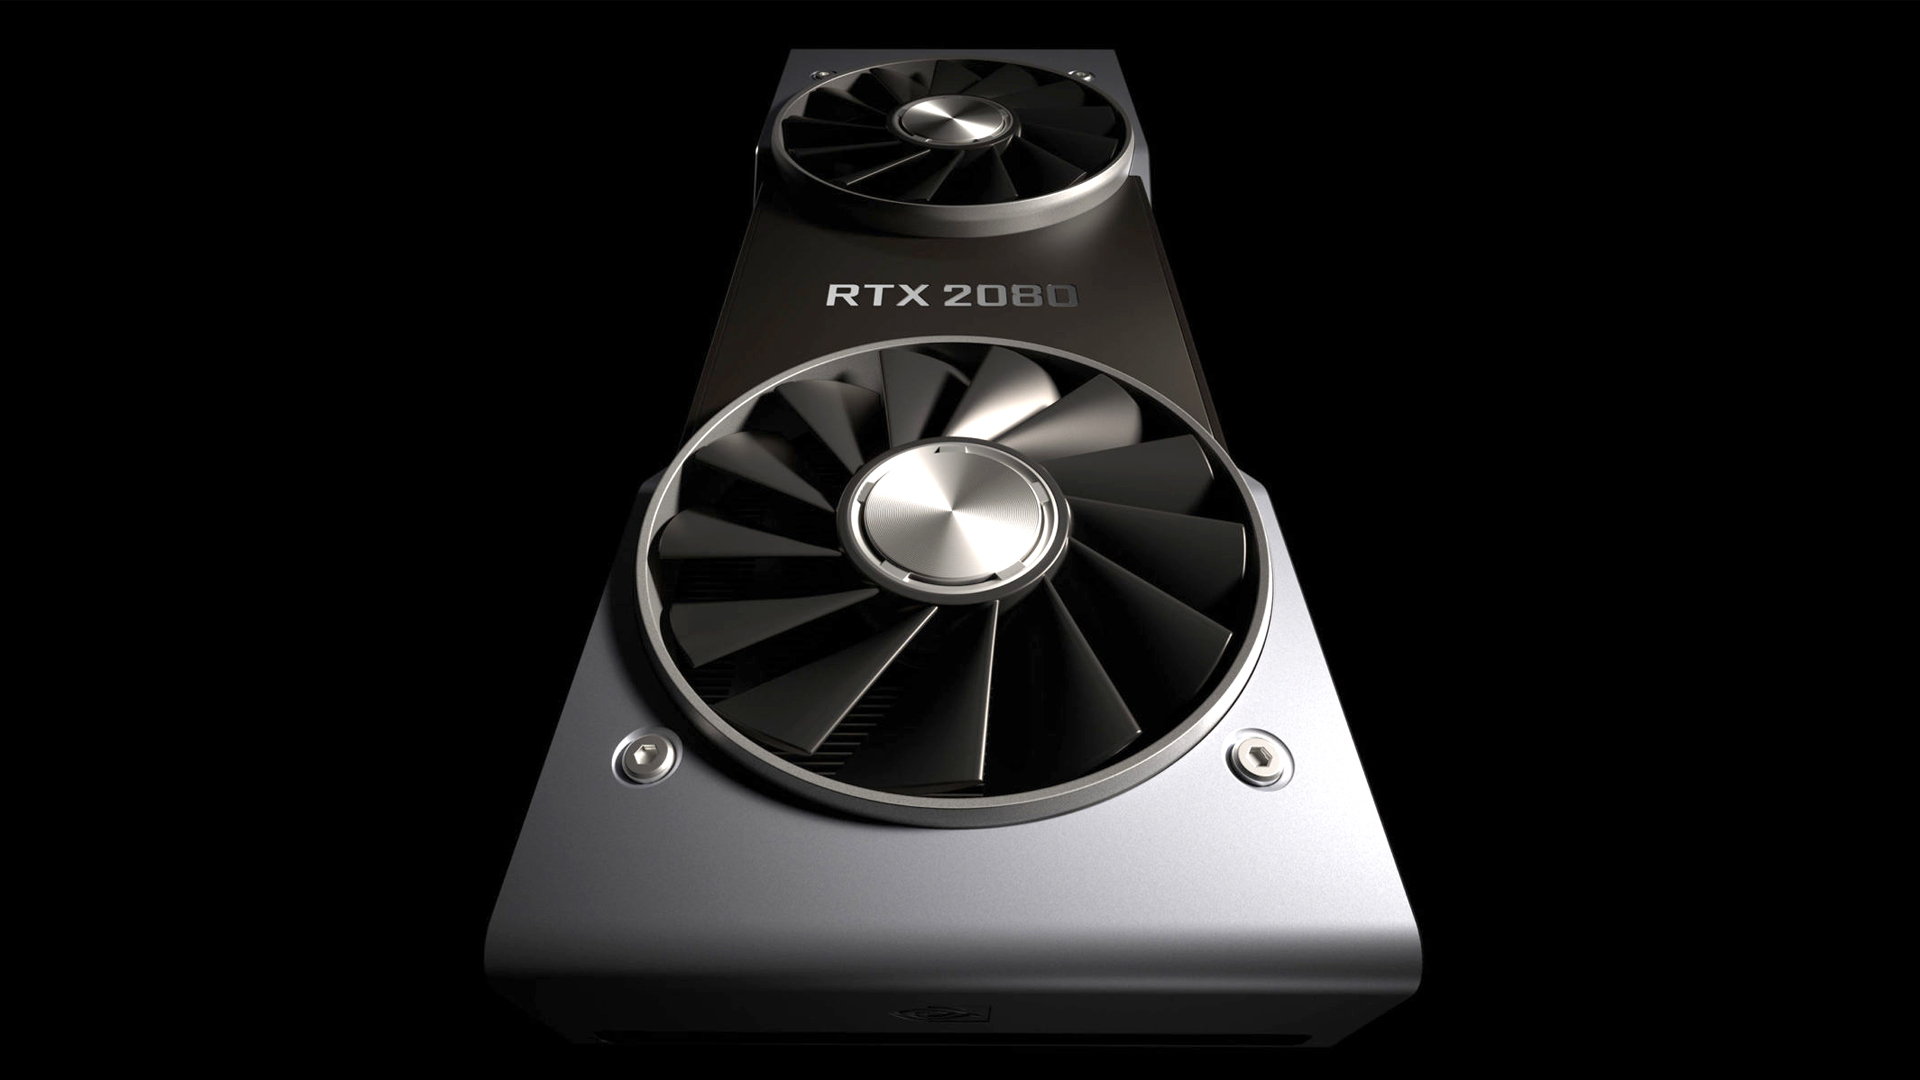 NVIDIA GeForce RTX 2080 Graphics Card